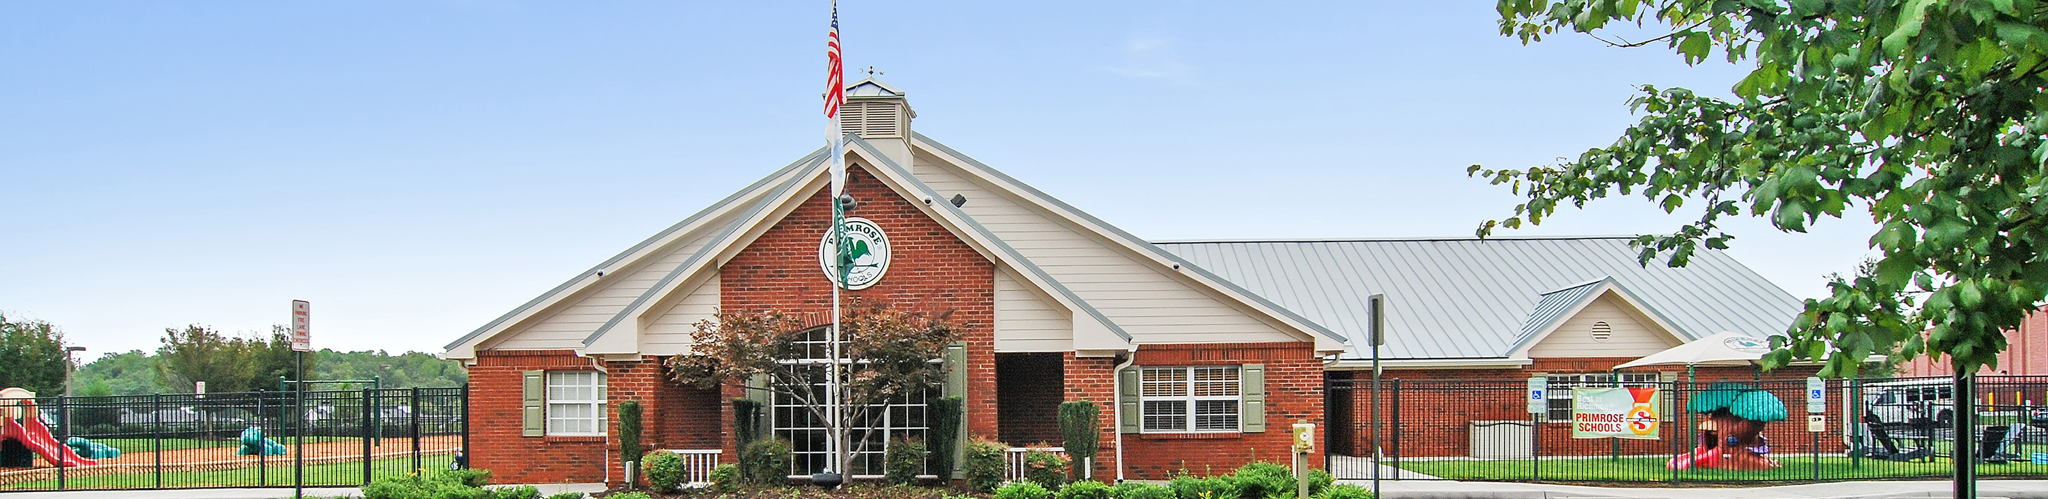 Exterior of a Primrose School of Swift Creek